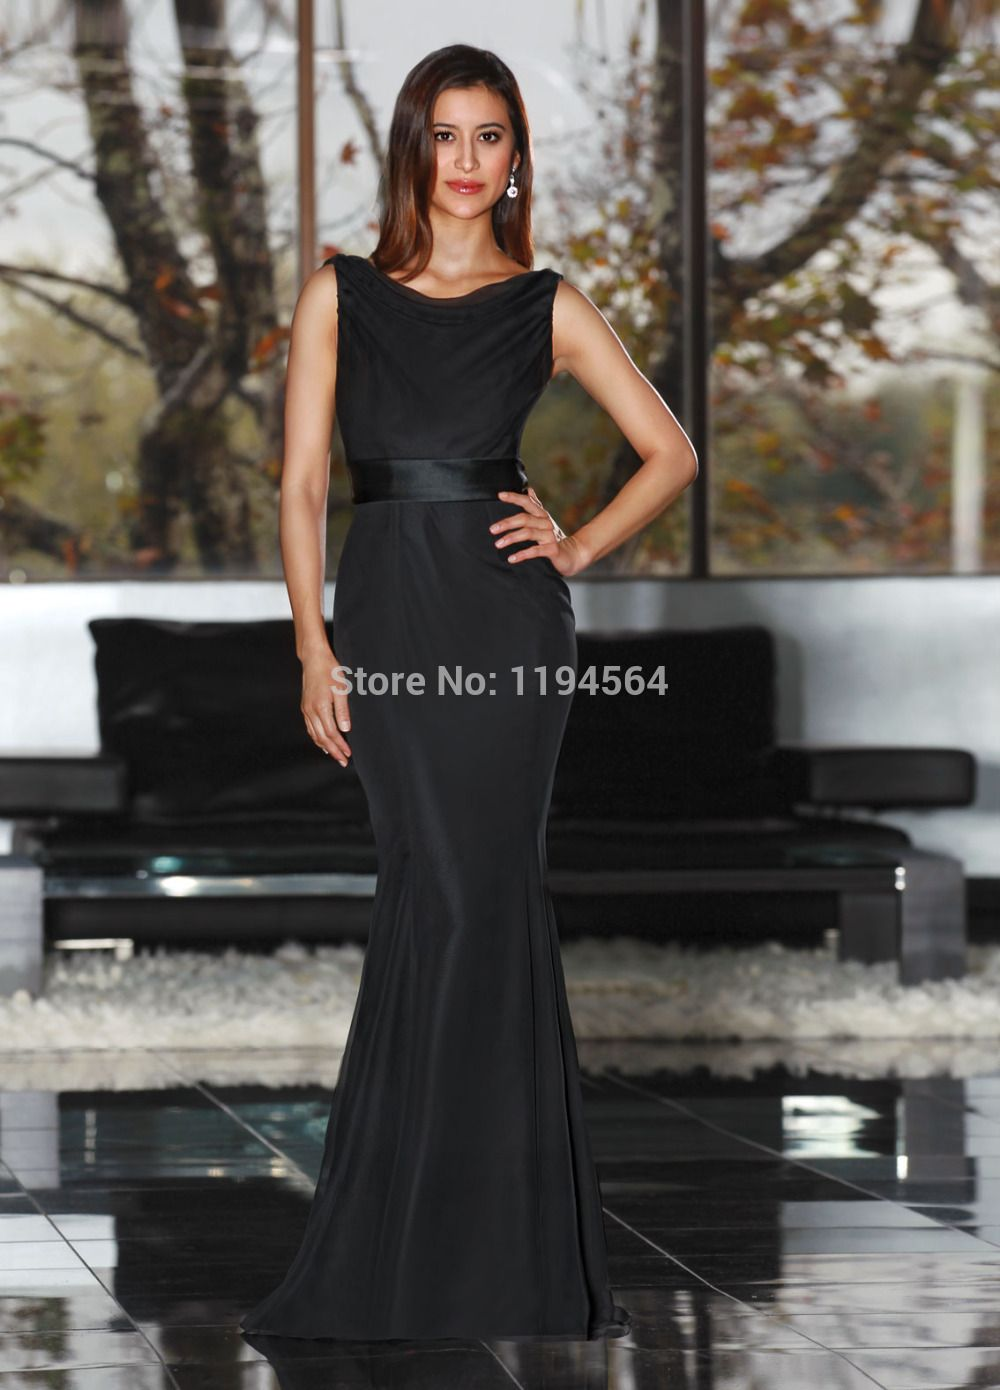 Click to buy fashion 2014 bridesmaid dresses black taffeta click to buy fashion 2014 bridesmaid dresses black taffeta dress to wedding ombrellifo Image collections